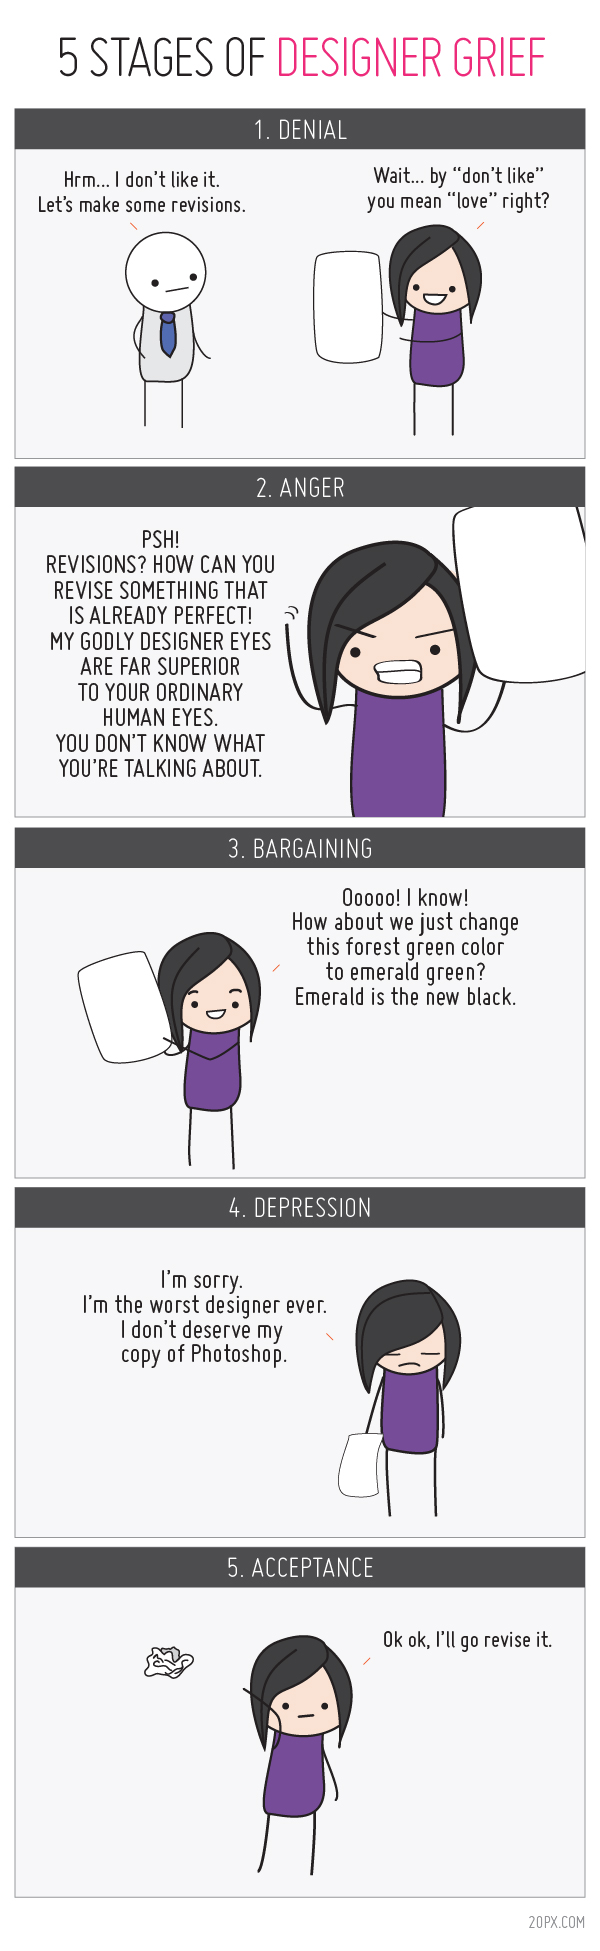 5 Stages of Designer Grief